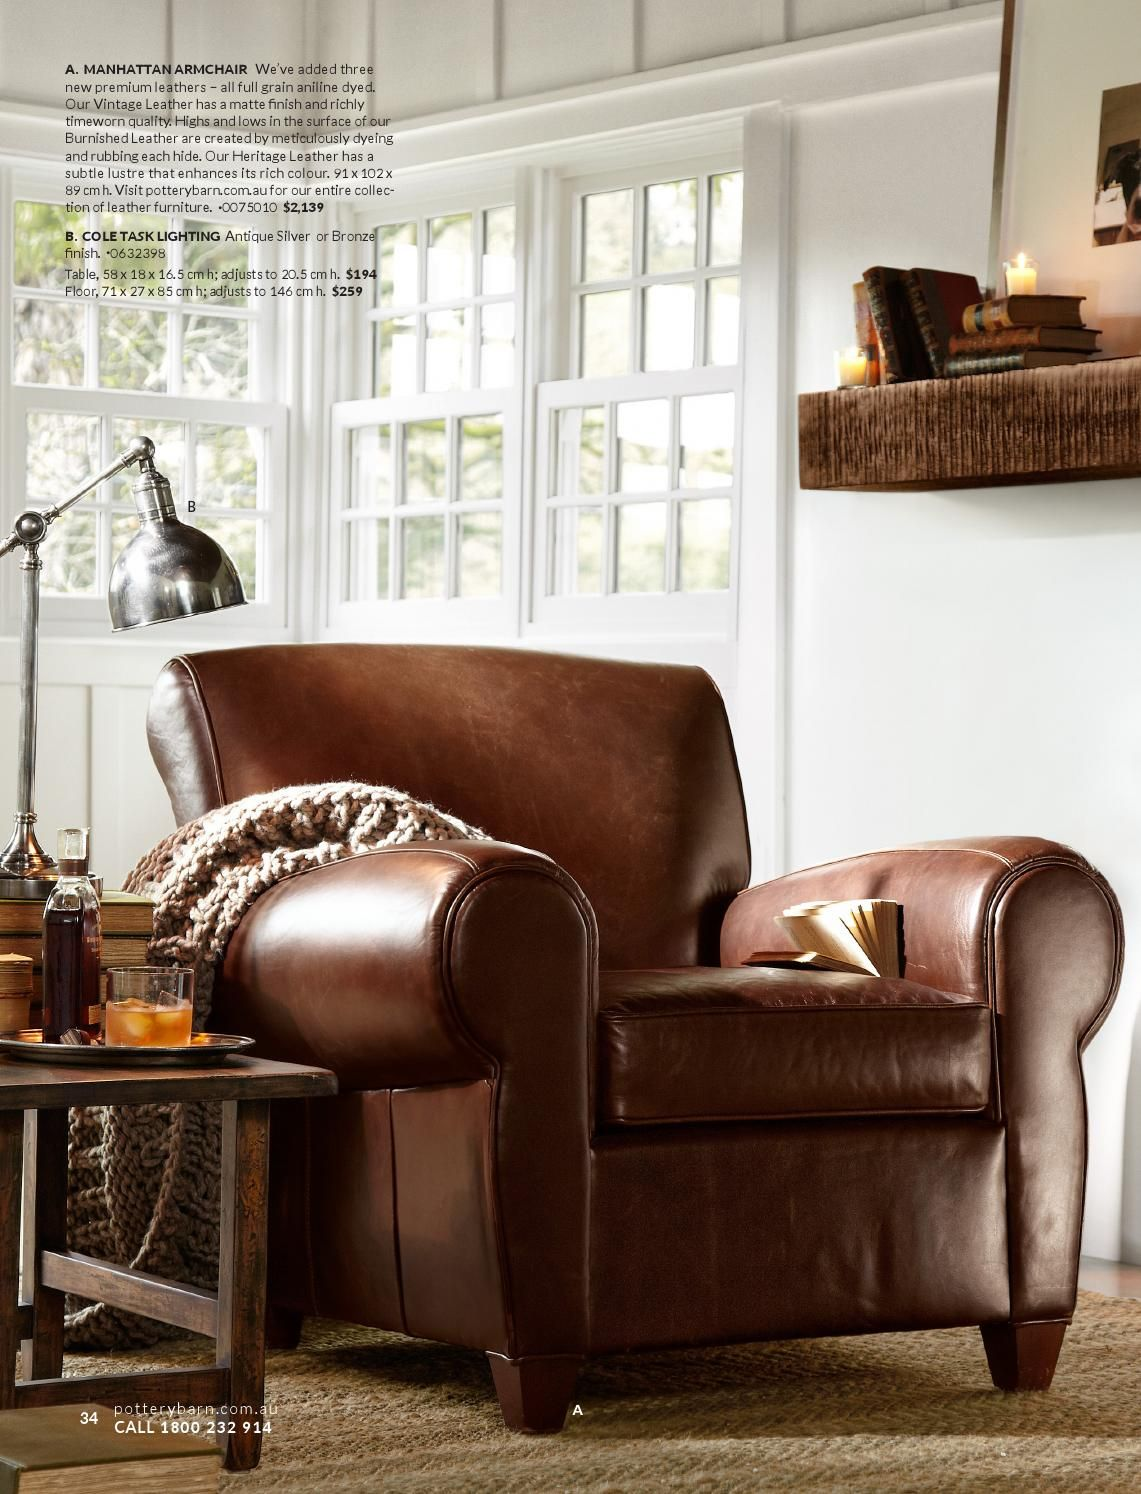 Pottery Barn Australia Home furniture, Club chairs, Home